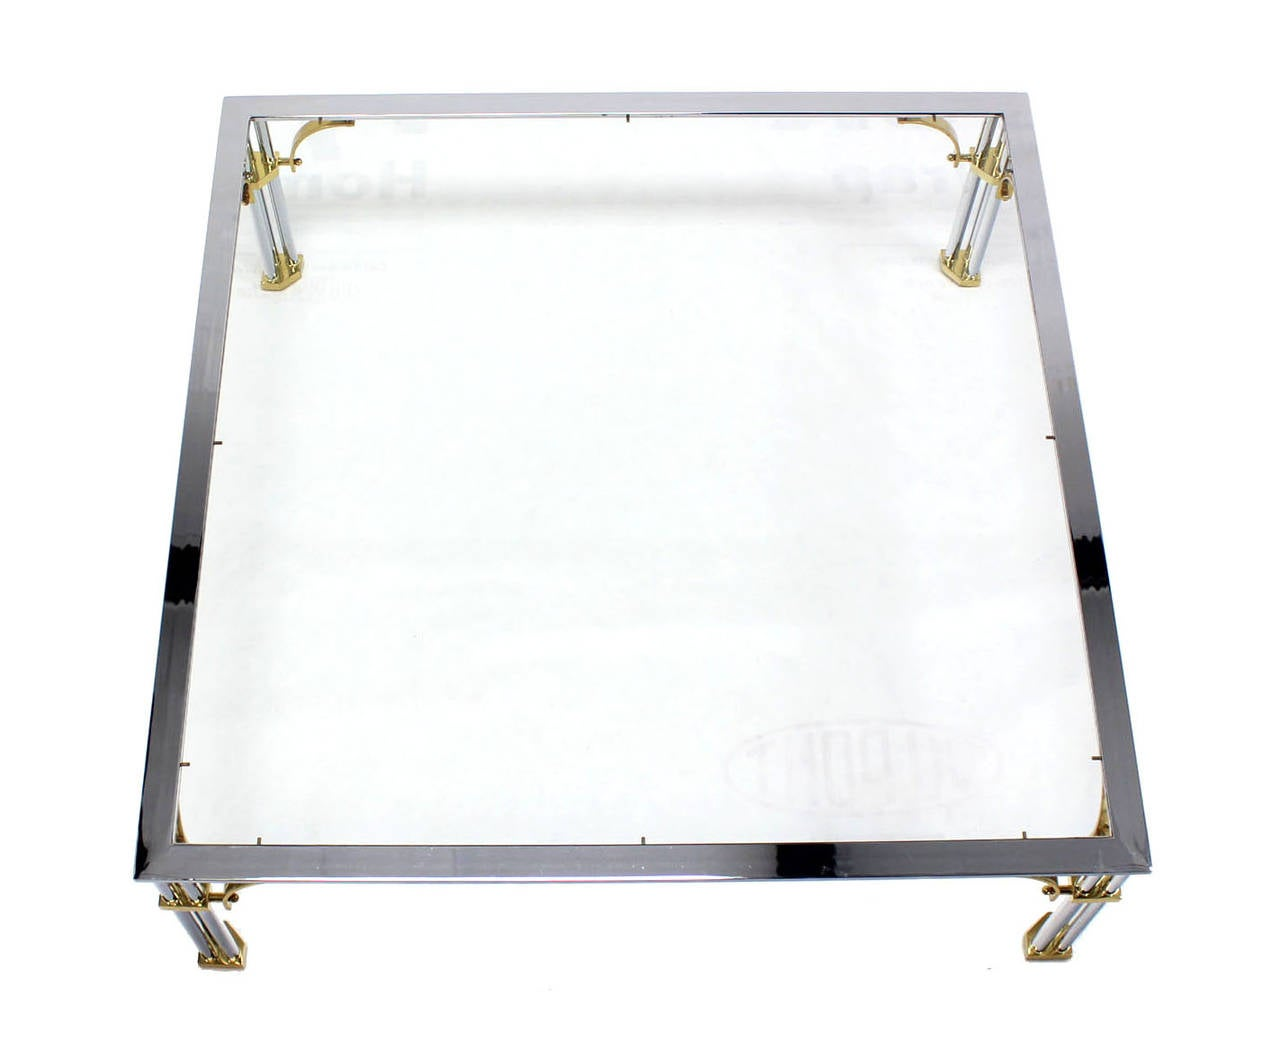 Large Square Mid-Century Modern Brass Chrome and Glass Coffee Table For Sale 2